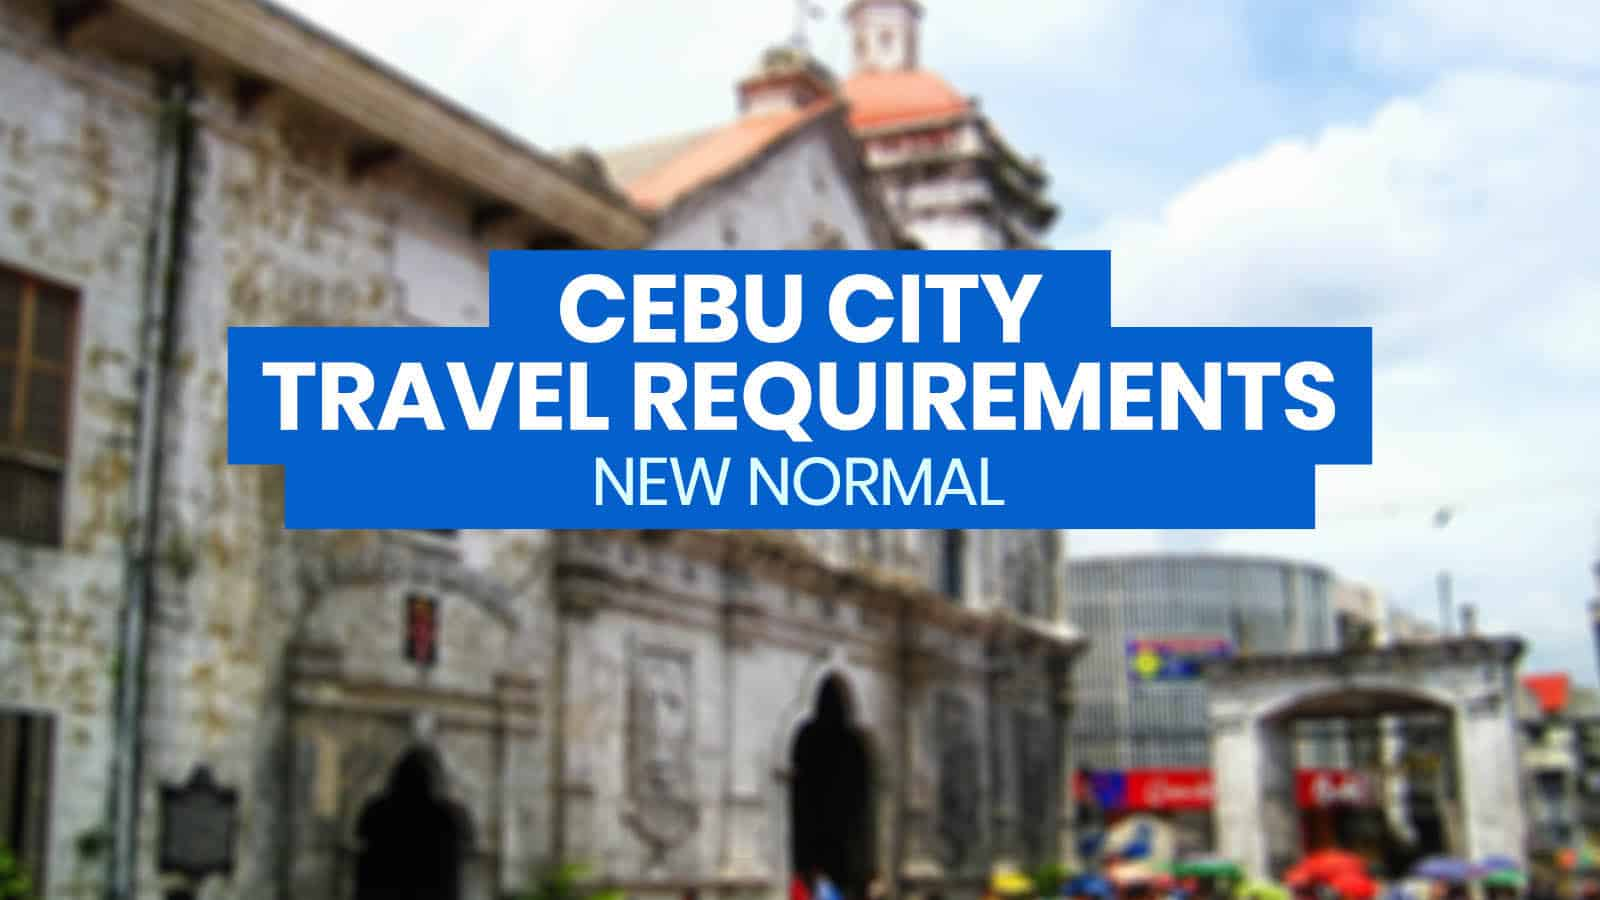 CEBU CITY: New List of TRAVEL REQUIREMENTS (New Normal)